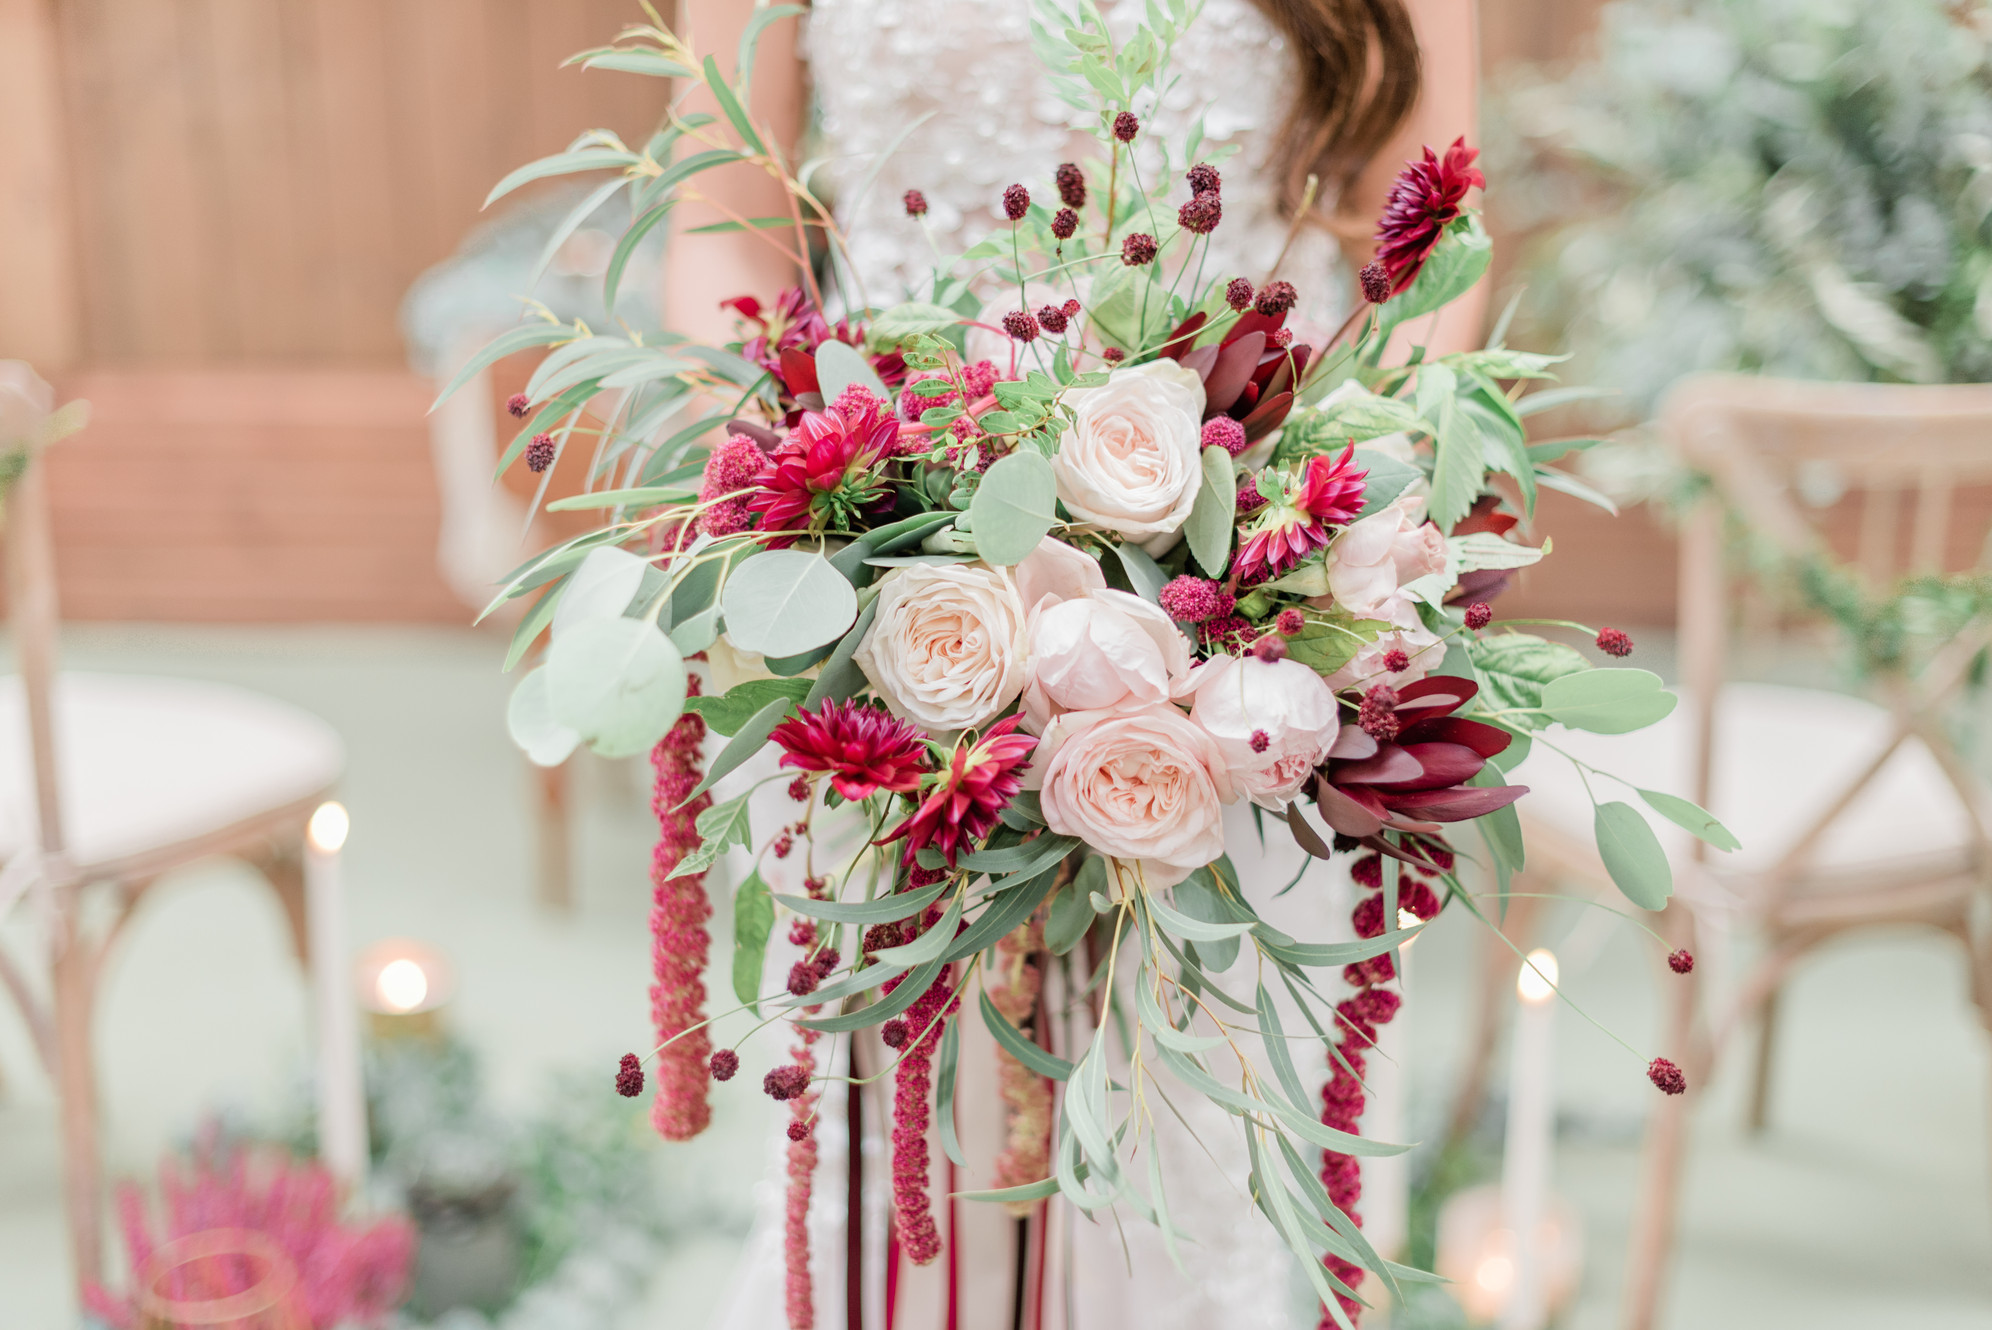 Sprig And Thistle Newcastle Wedding Florist And